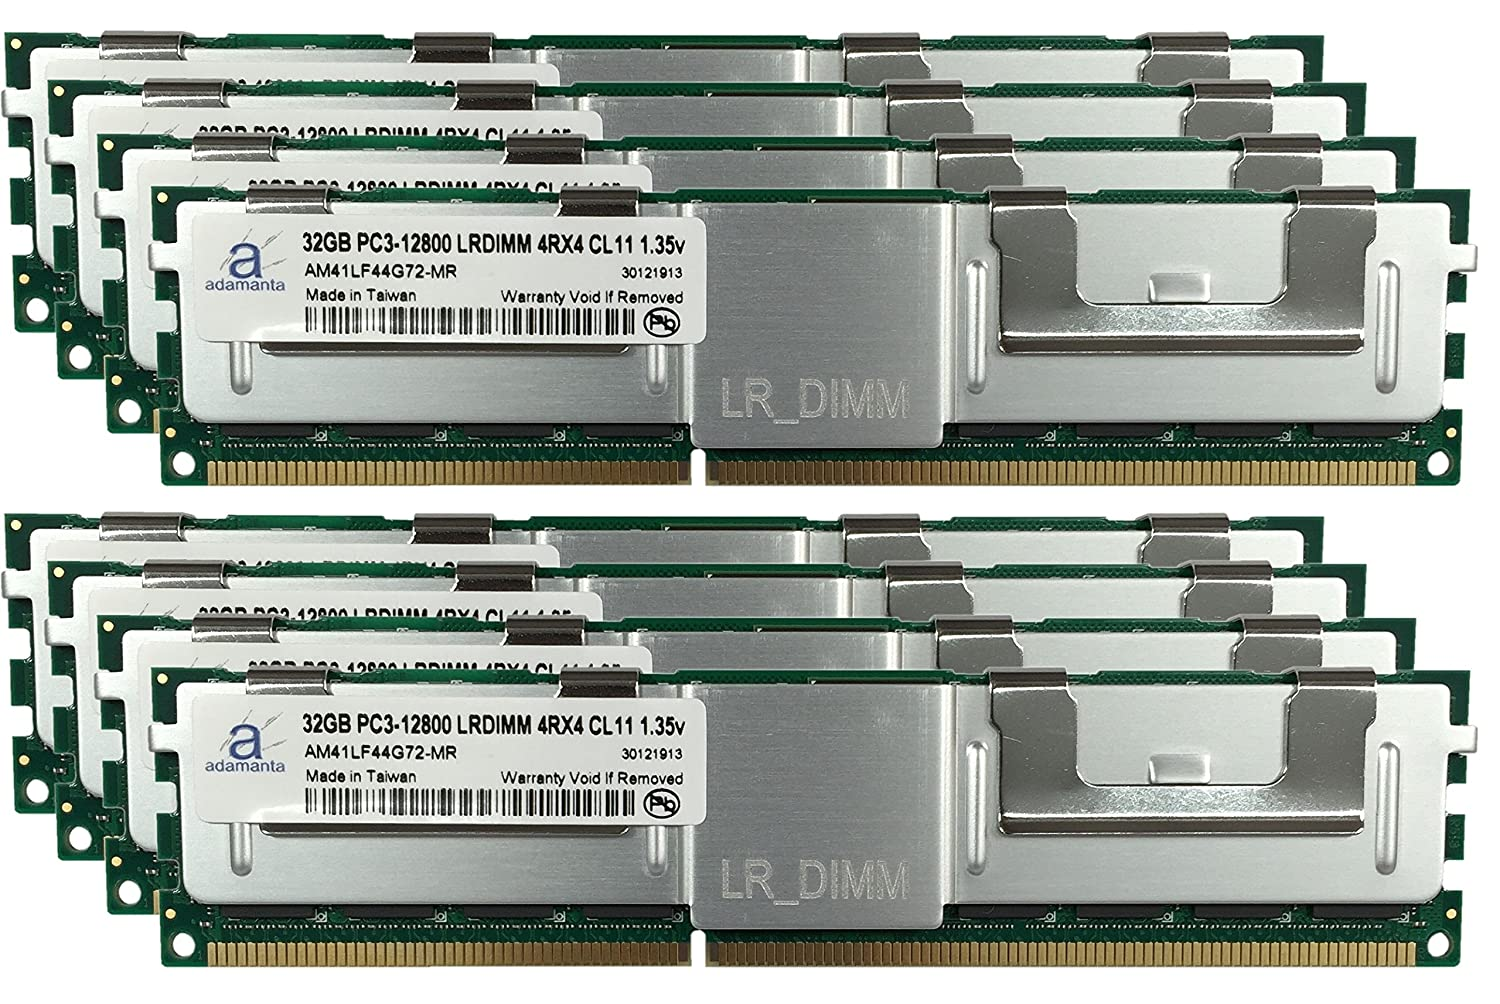 Adamanta 256GB (8x32GB) LRDIMM Memory Upgrade for Dell